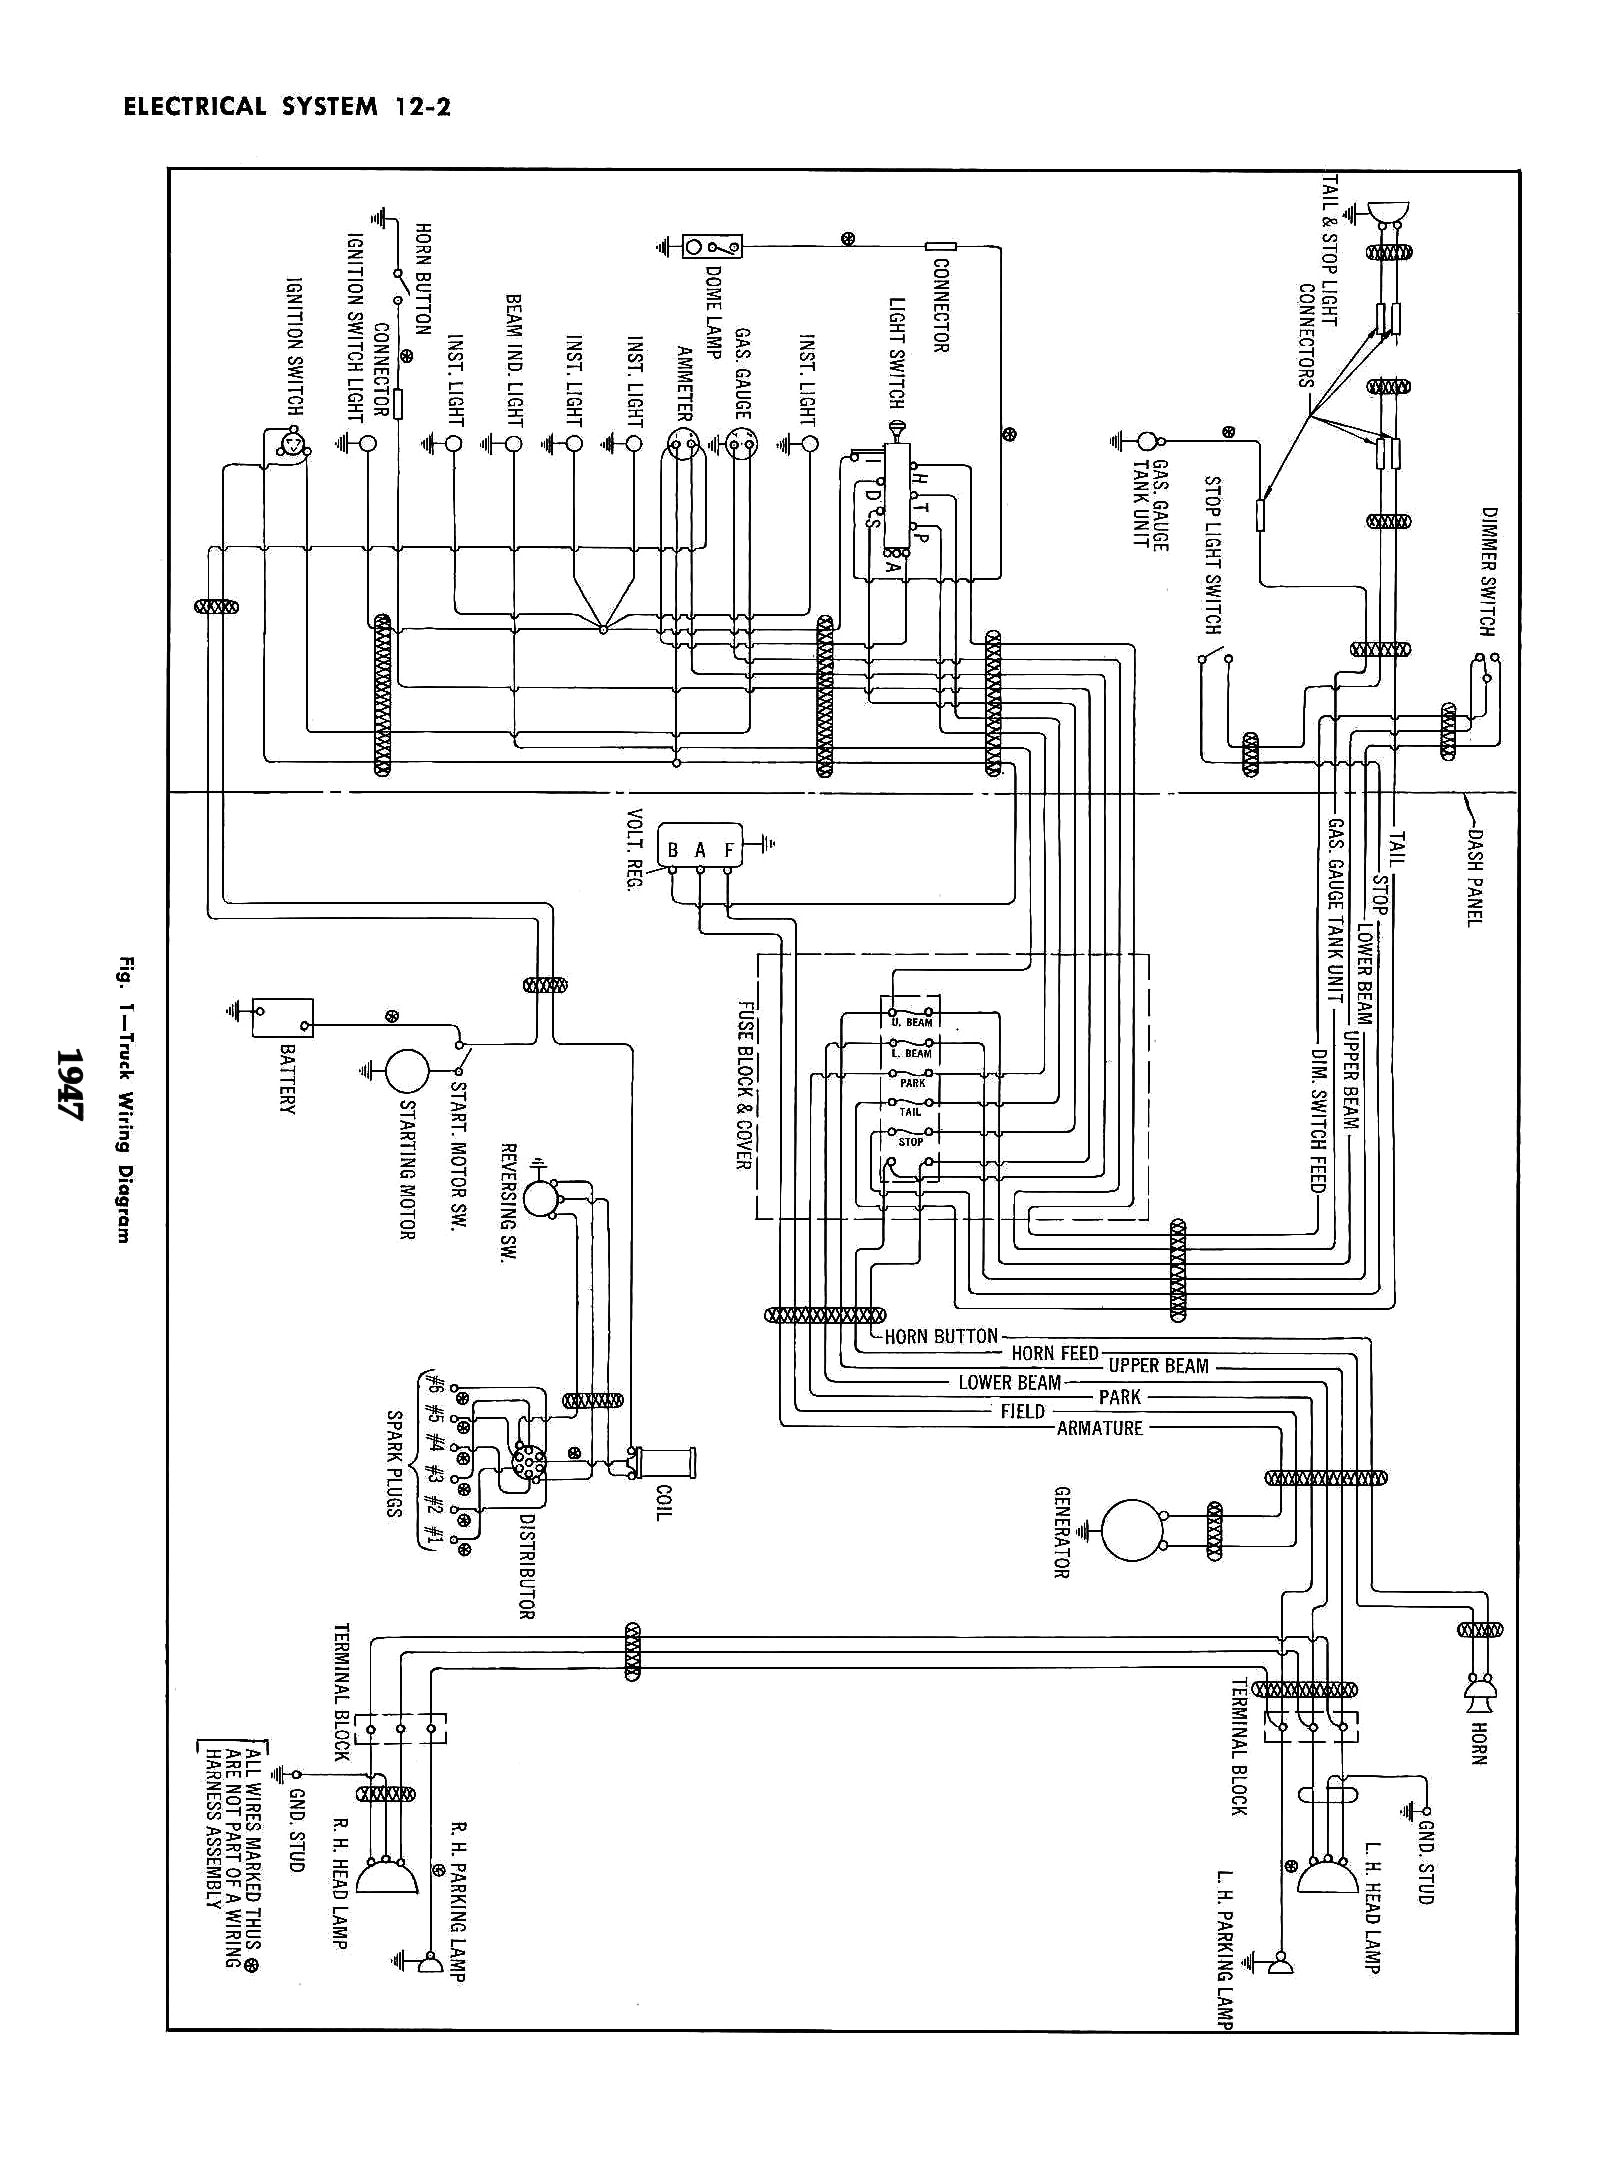 1953 Gm Ignition Wiring - Wiring Diagram Home Gm Ignition Wiring Block Diagram on gm alternator diagram, ignition module diagram, gm turn signal diagram, gm passkey bypass diagram, gm tbi diagram, gm ecu diagram, gm ignition fuse, gm charging system diagram, gm ignition wire harness, gm shift linkage diagram, ignition system diagram, gm wiring harness, gm horn diagram, gm fuel pump relay diagram, gm steering diagram, gm ignition repair, gm ignition system, gm fuse box diagram, gm starter wiring, gm fuel line diagram,